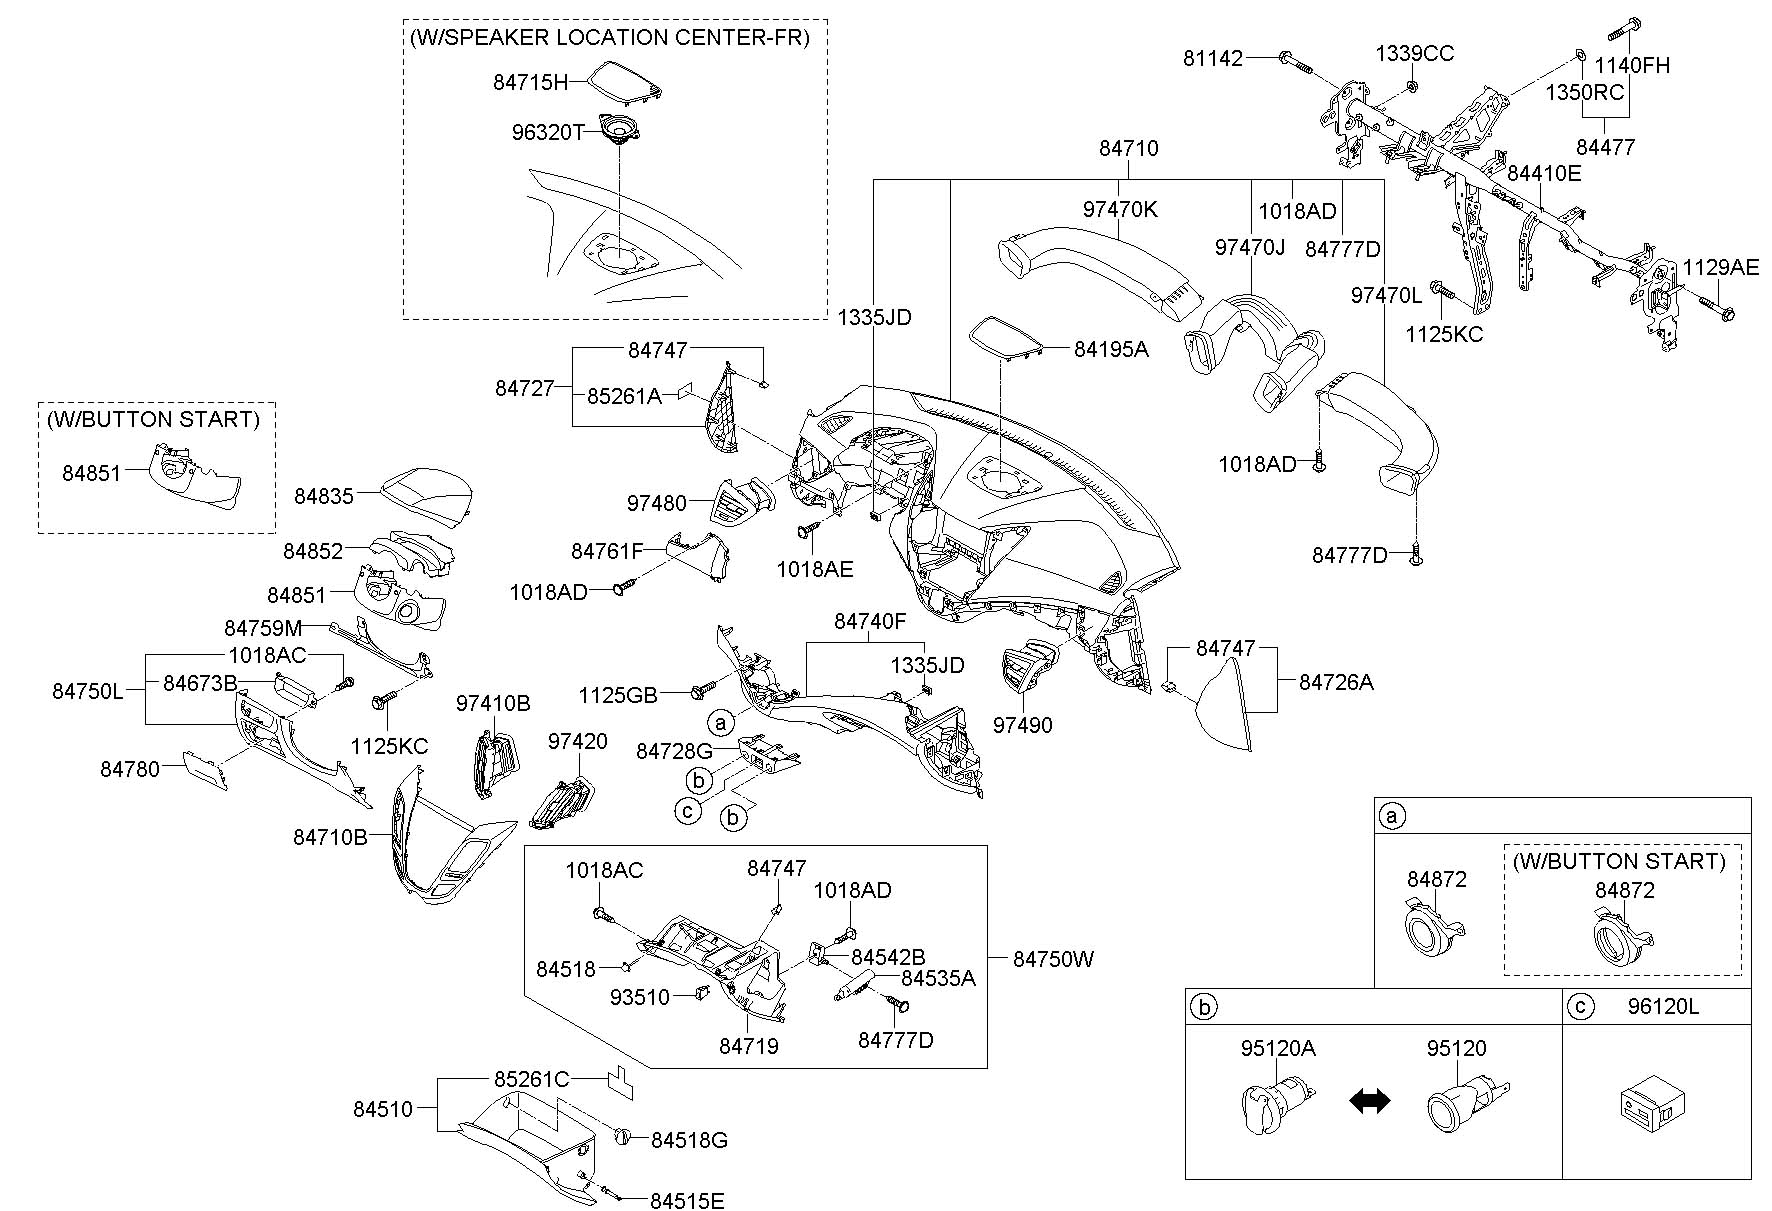 KHMAPGS1184 84701 hyundai elantra engine diagram,2011 Hyundai Accent Stereo Wiring Diagram